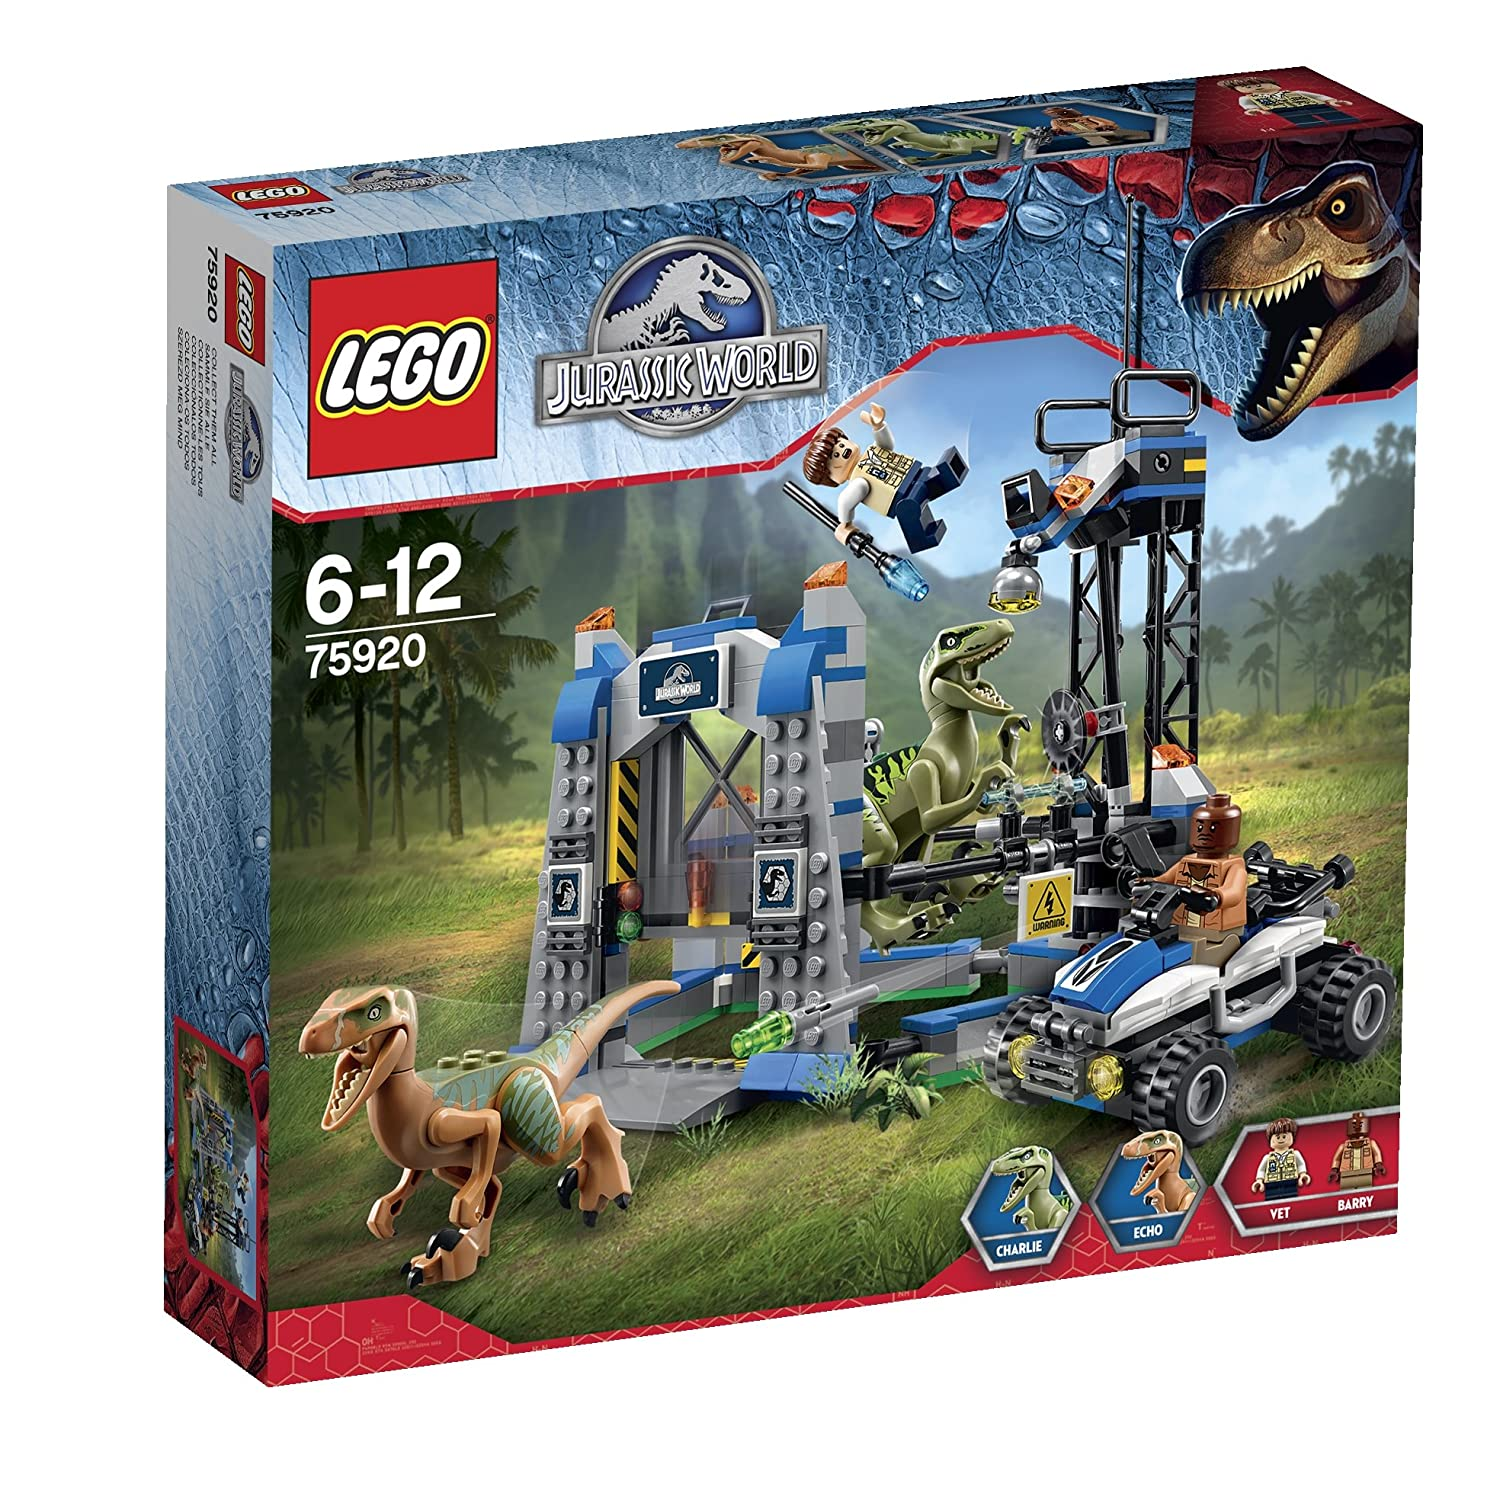 Top 8 Best Lego Dinosaurs Set Reviews in 2020 4